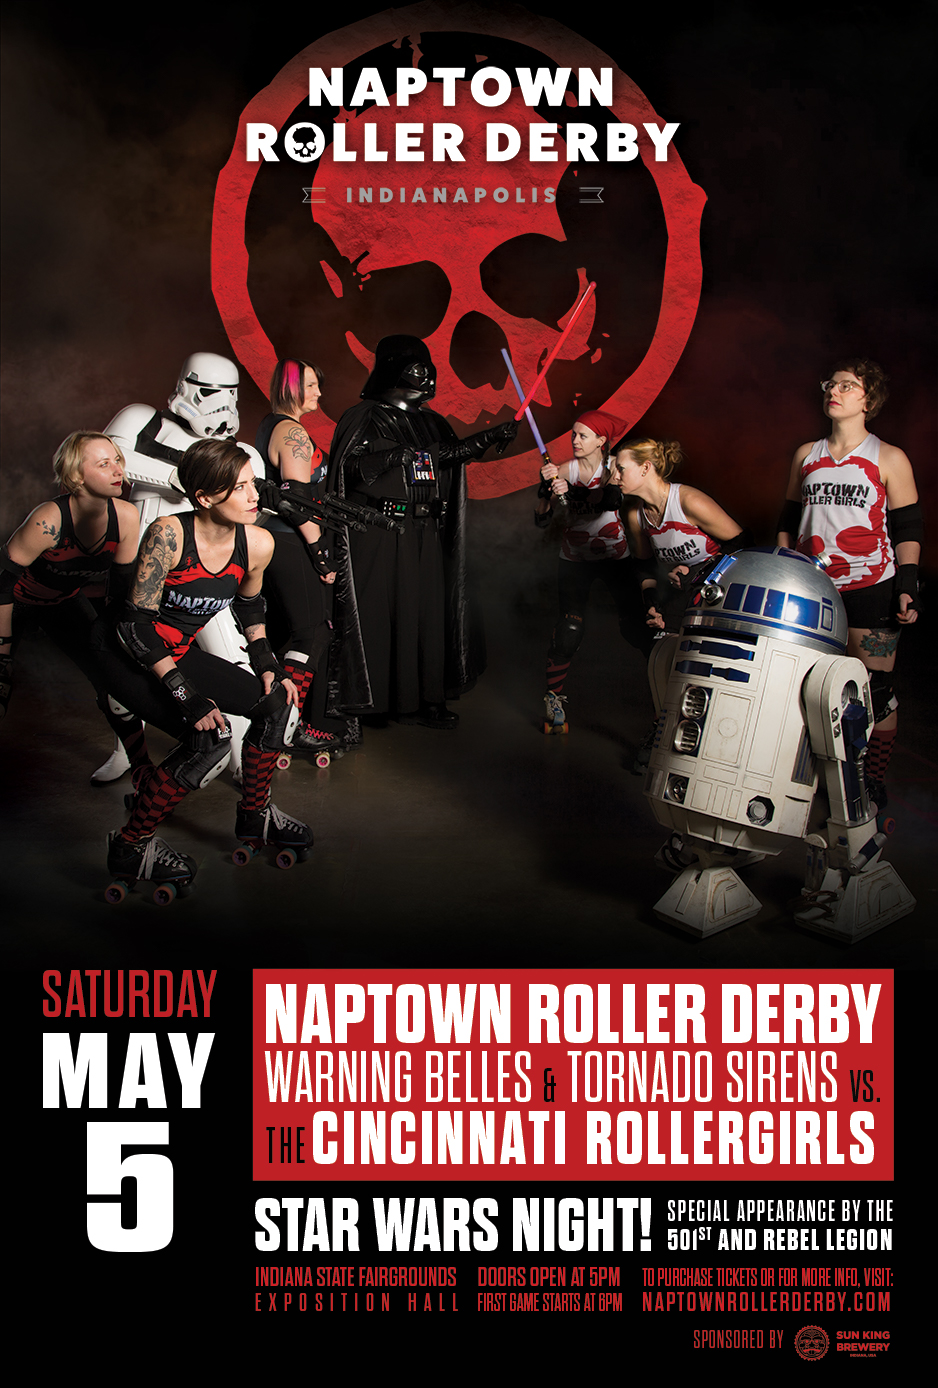 May 5, 2018 - Naptown Star Wars Bout!